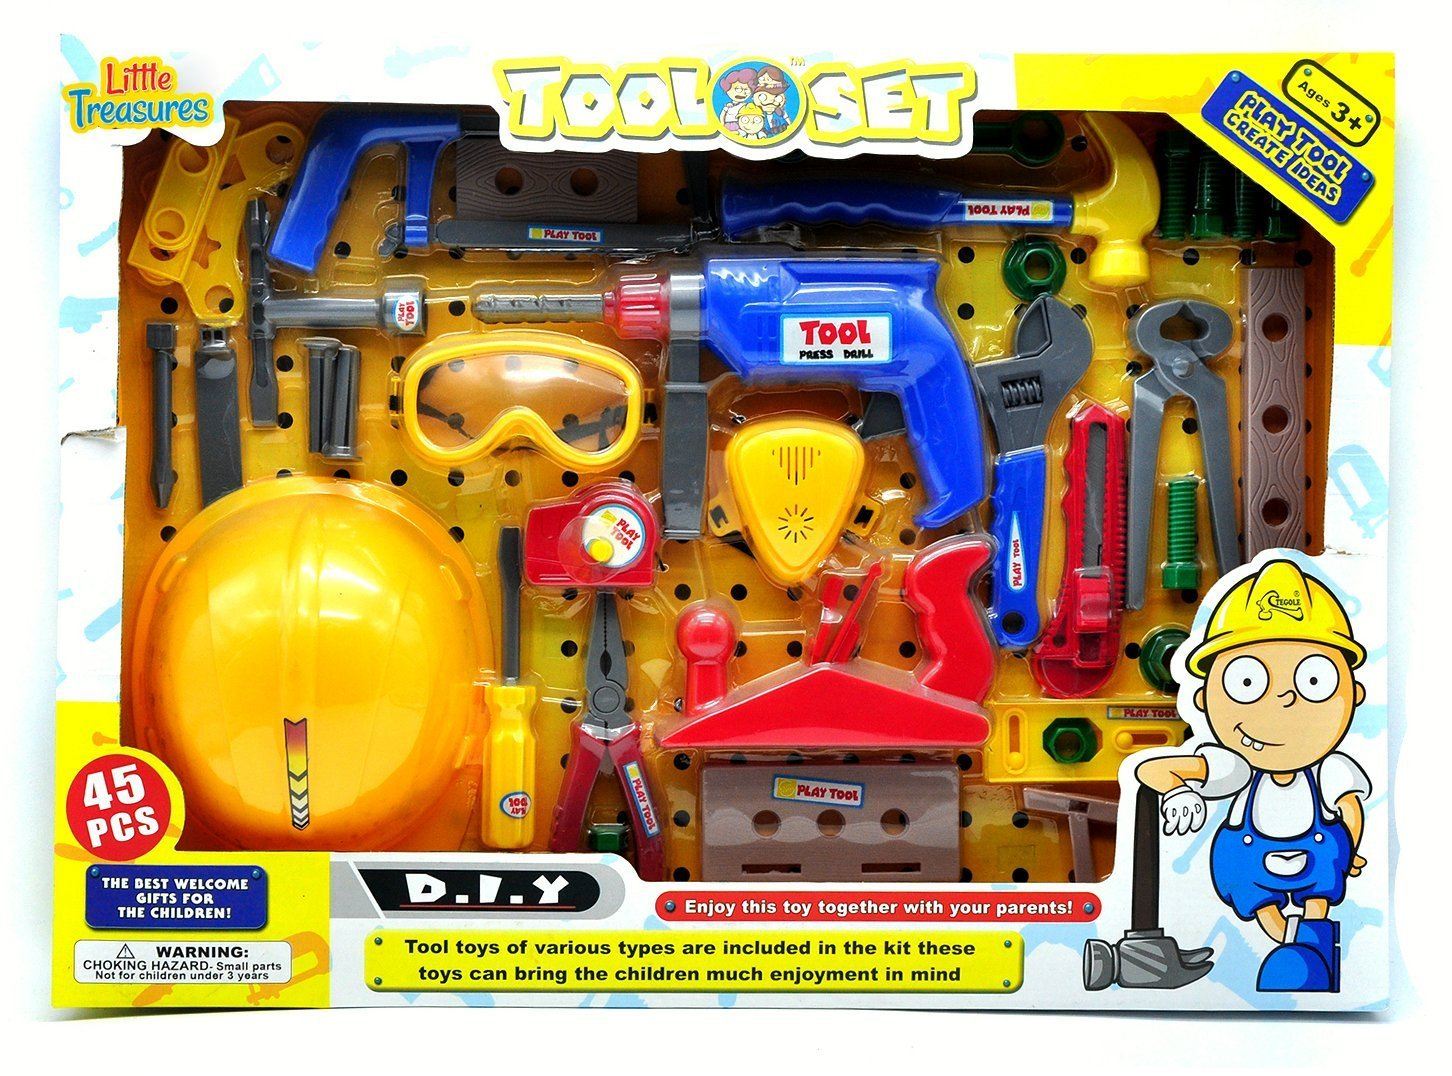 Little Treasures Deluxe Junior Tool Series 45 piece play Tools Set - create ideas tool play set with working friction drill toy for you little handyman fixer man helper